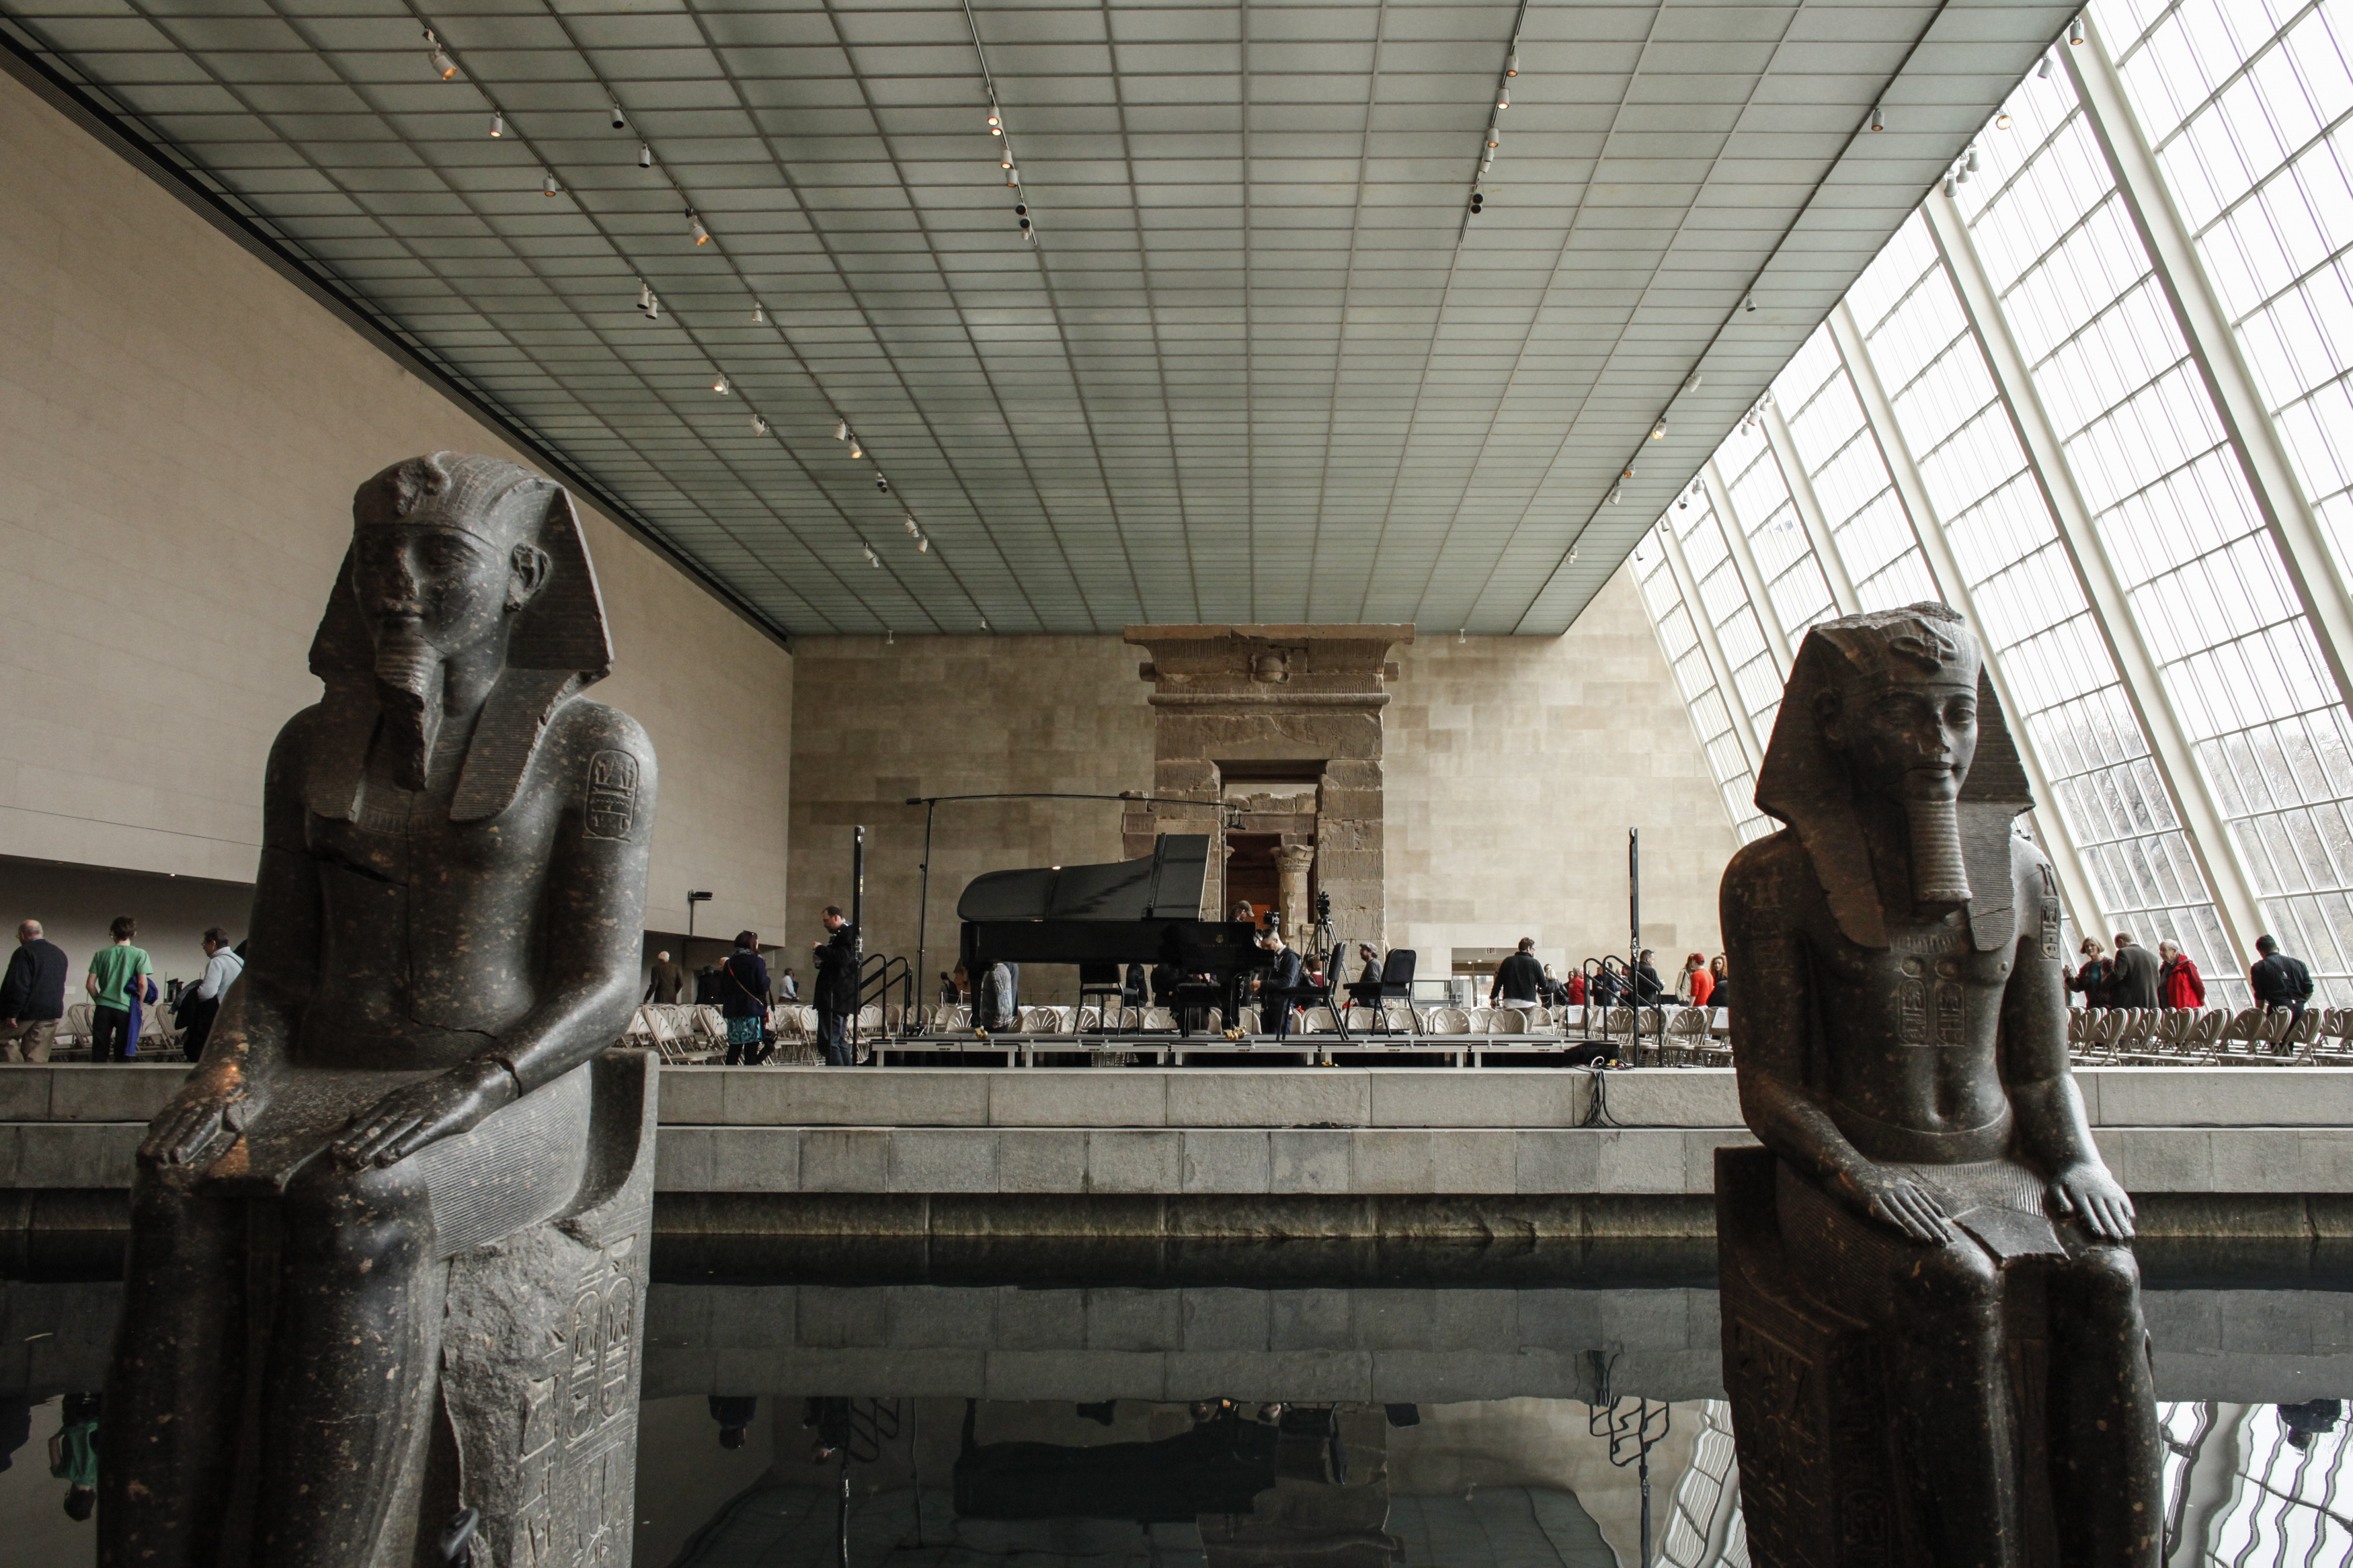 A general View of The Temple of Dendur inside the Metropolitan Museum of Art in New York on March 13, 2016.